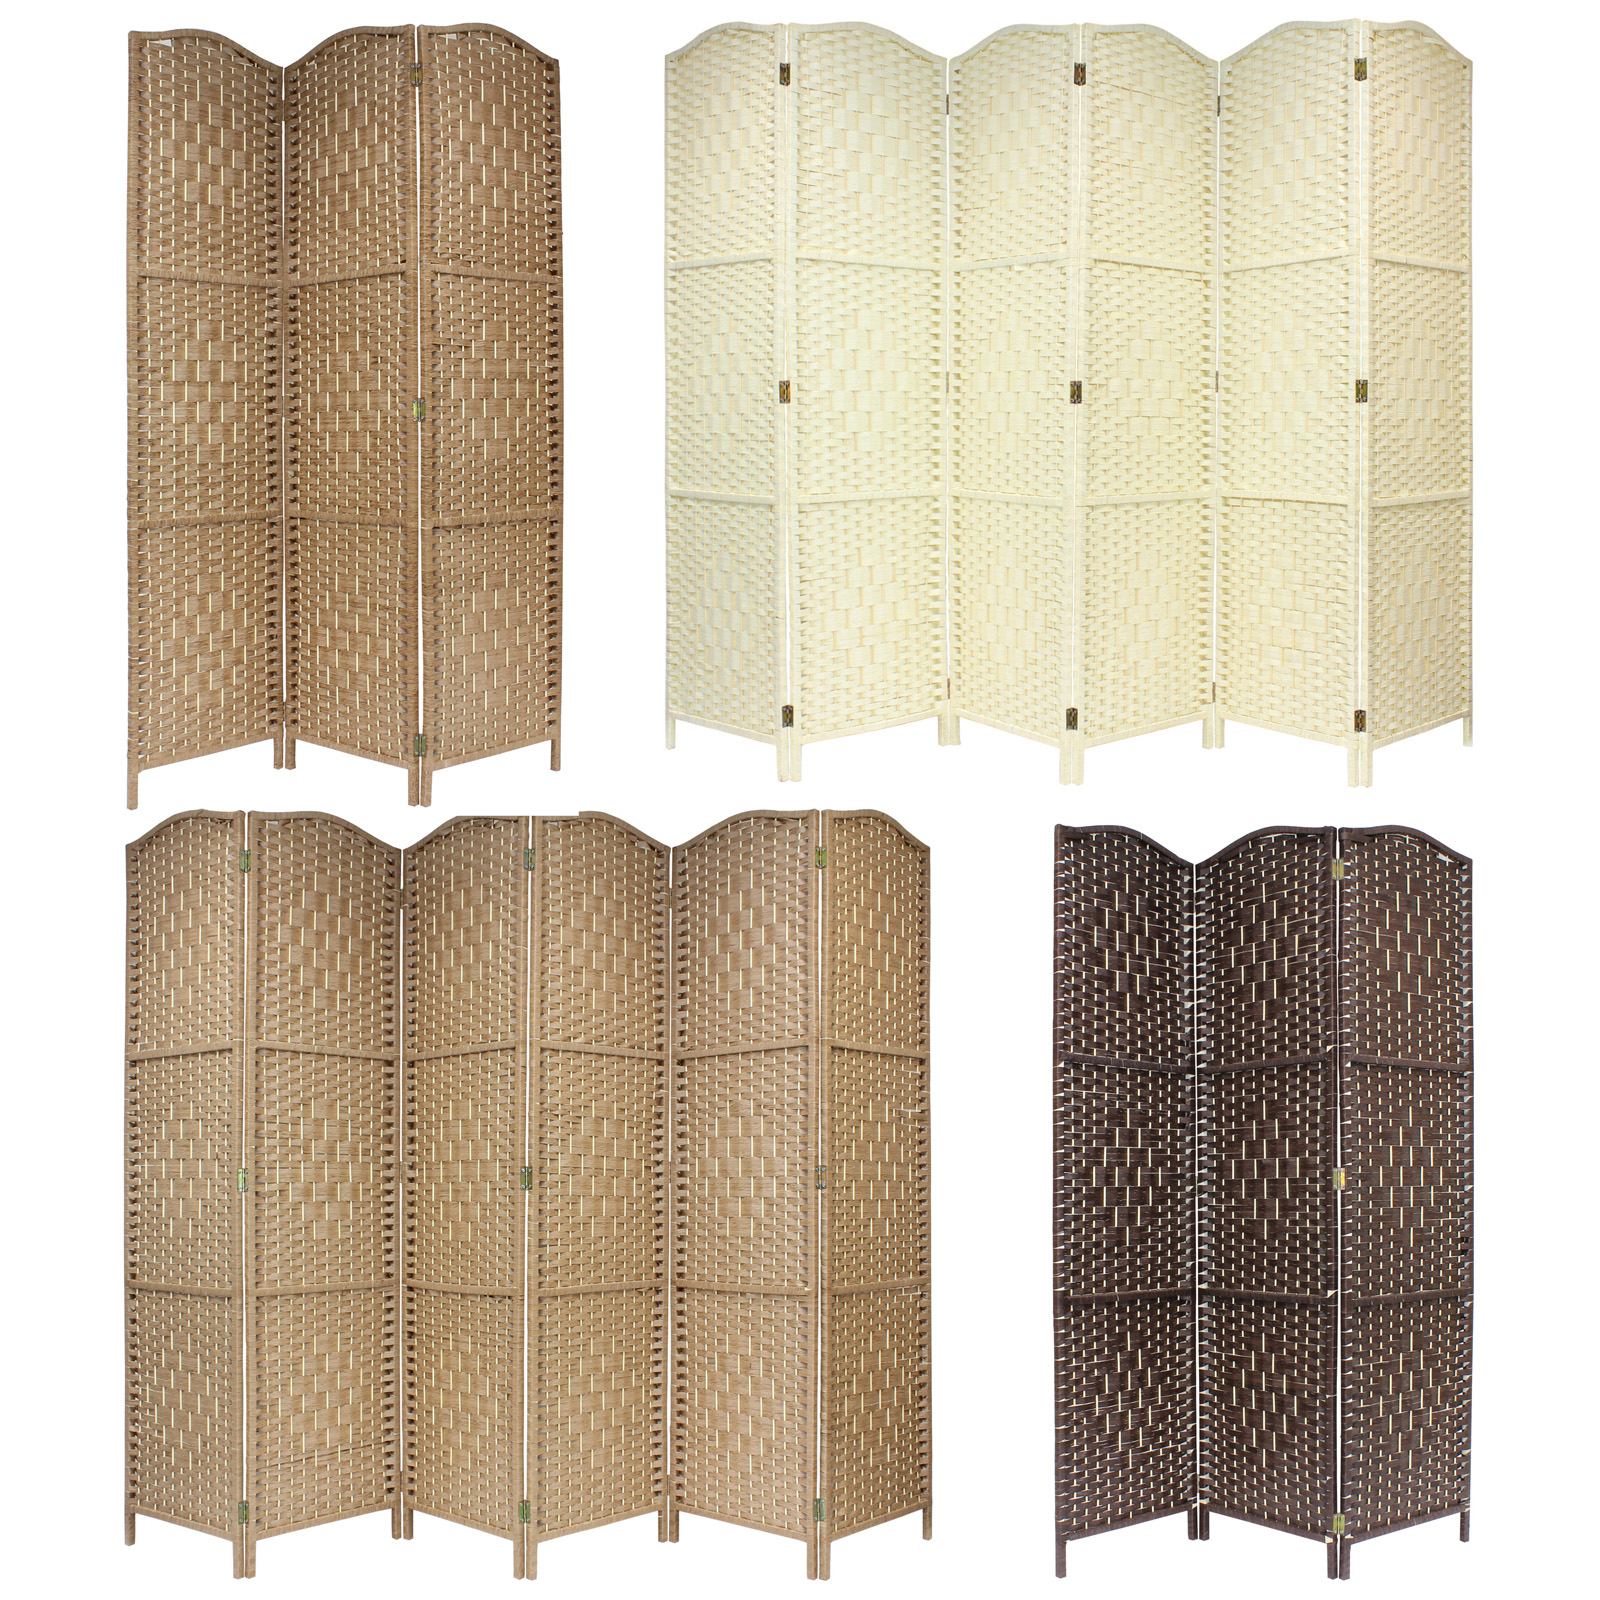 Room Seperator Solid Weave Hand Made Wicker Folding Room Divider Separator